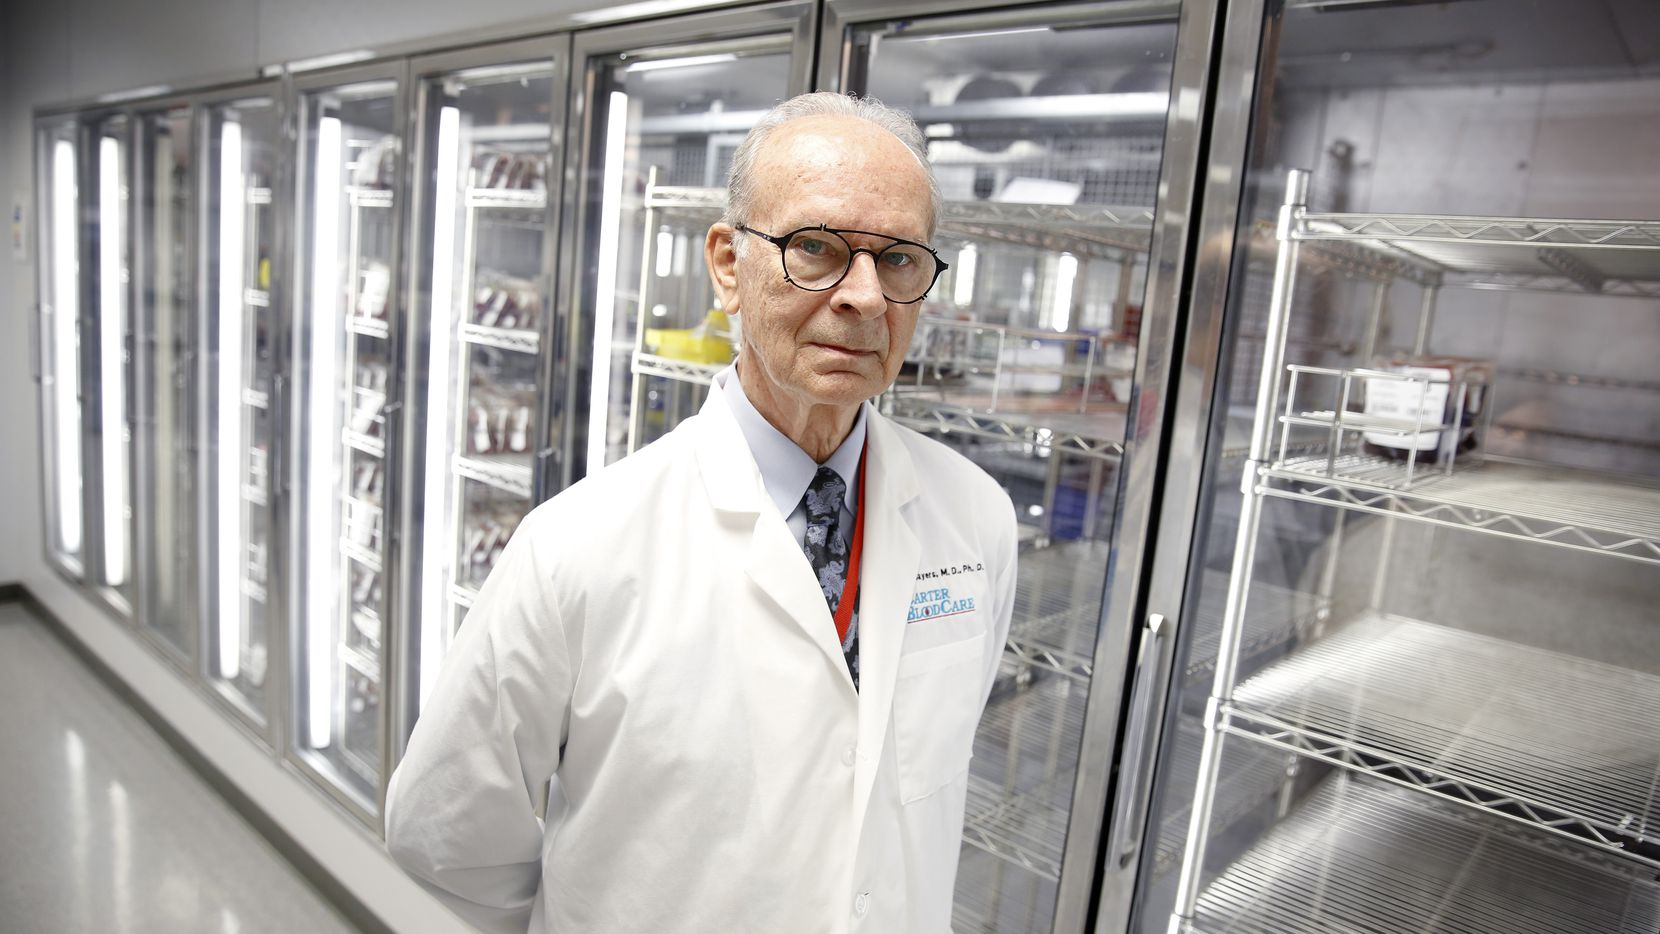 """President and CEO of Carter BloodCare, Dr. Merlyn Sayers, is pictured before an empty cooler at their headquarters in Bedford, Texas, Wednesday March 18, 2020. The Center is putting out the word that they have a shortage of blood. """"Something like 600 people a day in our community need a transfusion. They can't wait 'til coronavirus has blown over."""", he said. (Tom Fox/The Dallas Morning News)"""